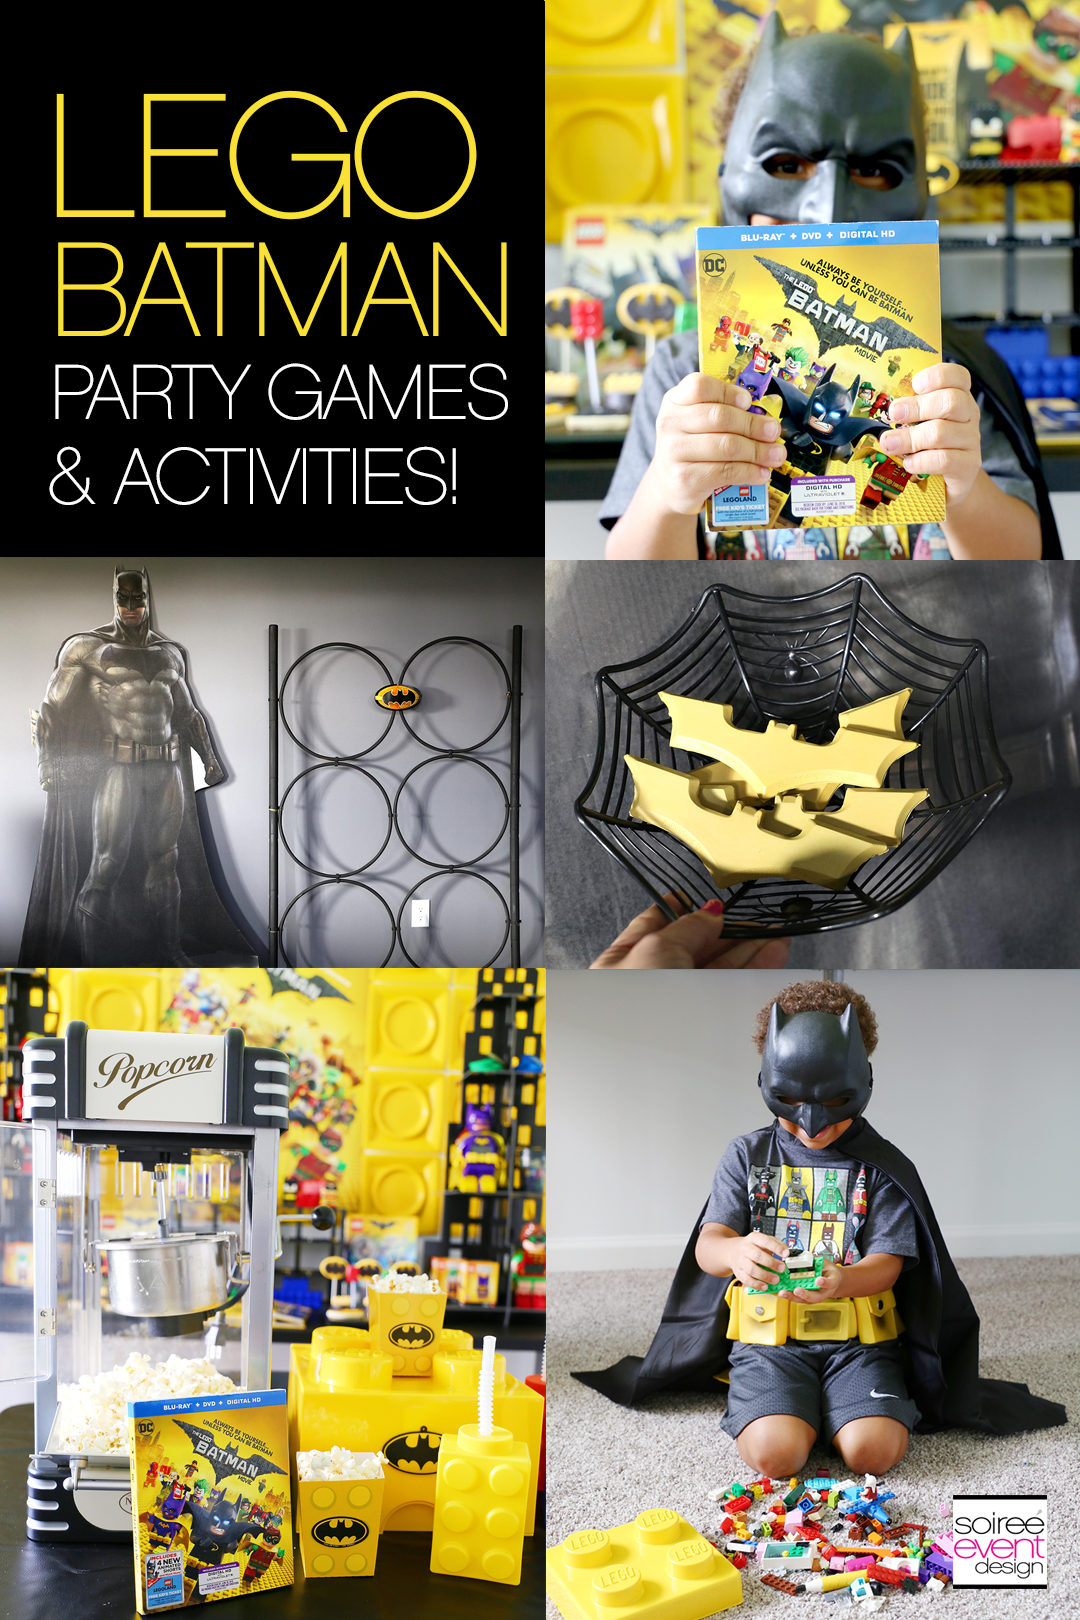 LEGO Batman Party Activites - Soiree Event Design